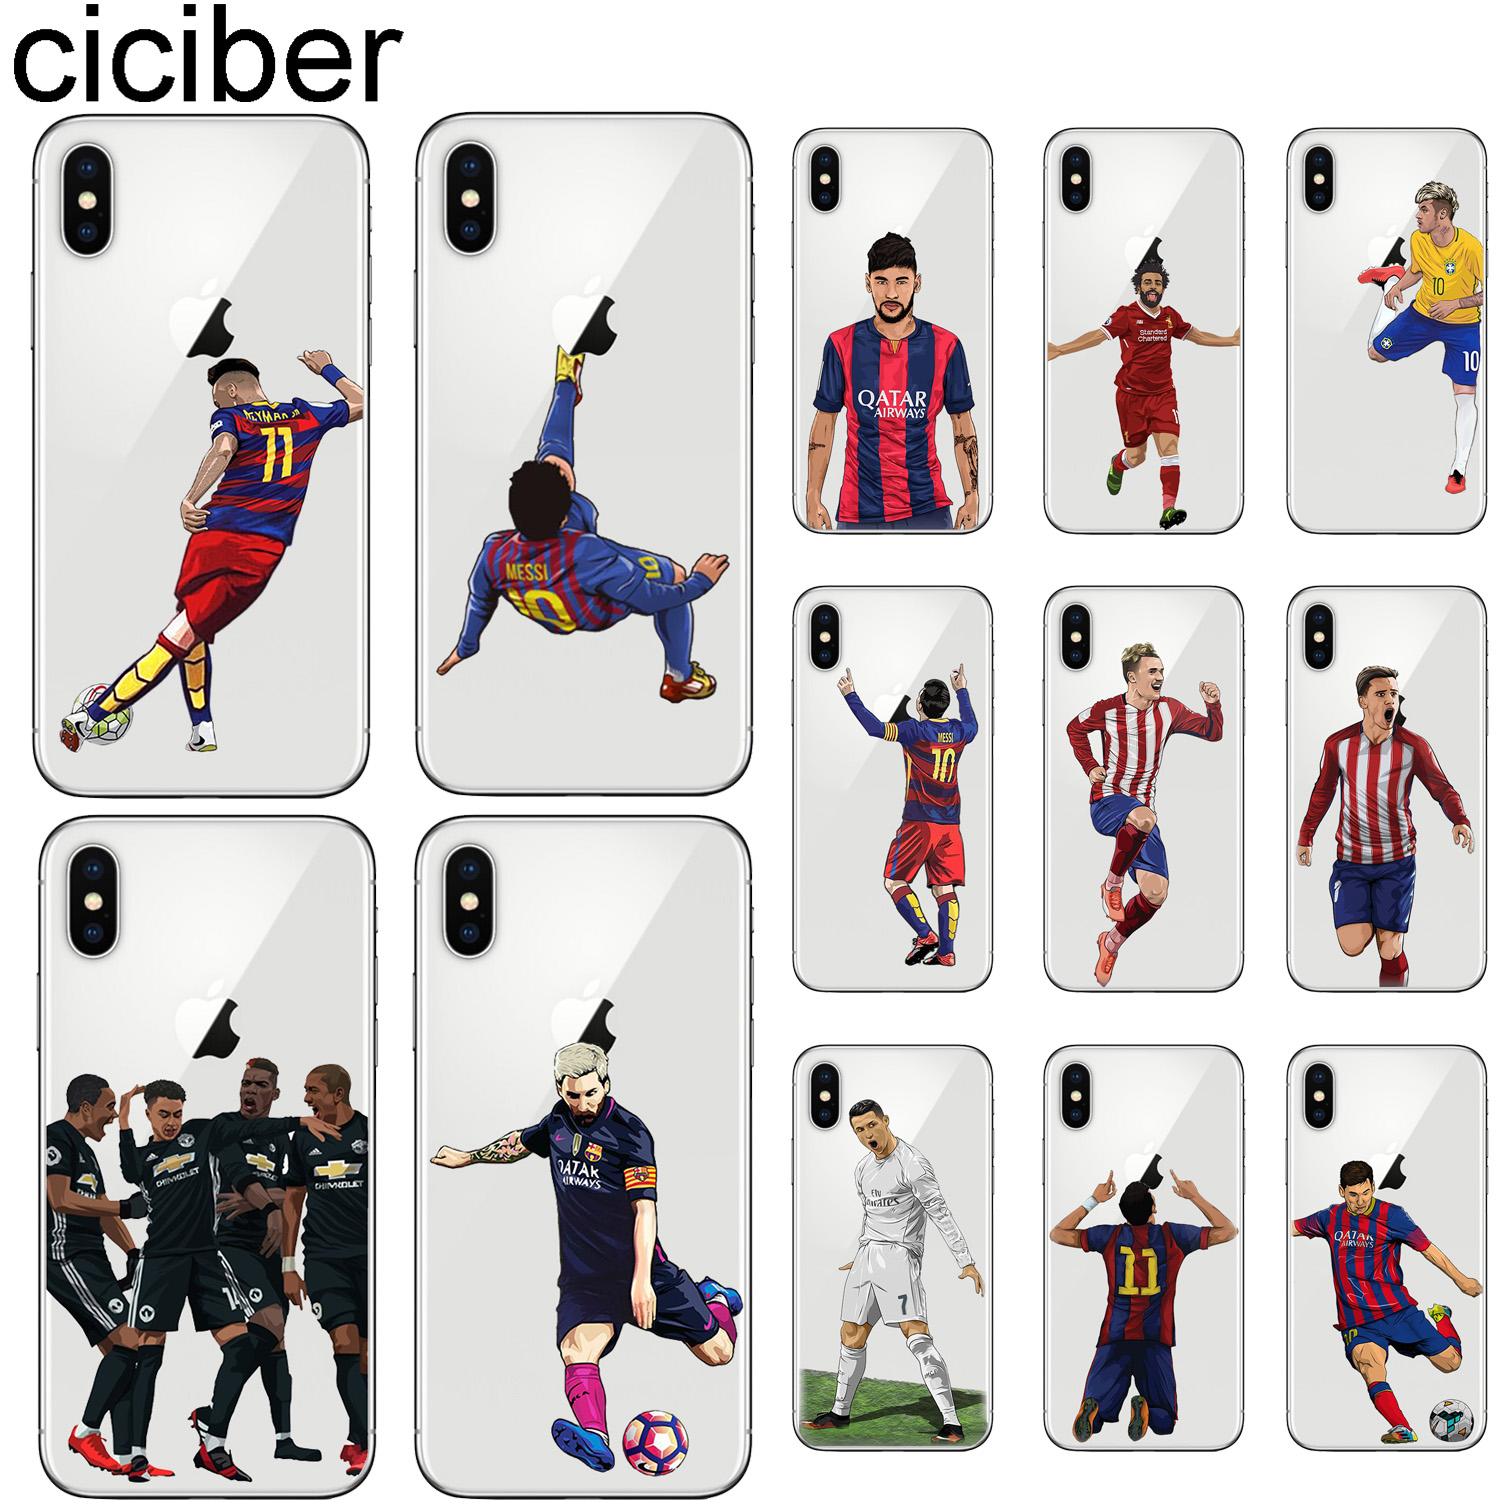 ab5866bb155 ciciber For Iphone 7 8 6 6S Plus 5S SE X XR XS MAX Cover Soft silicone TPU  Clear Phone Cases Messi Neymar Football Jersey Fundas